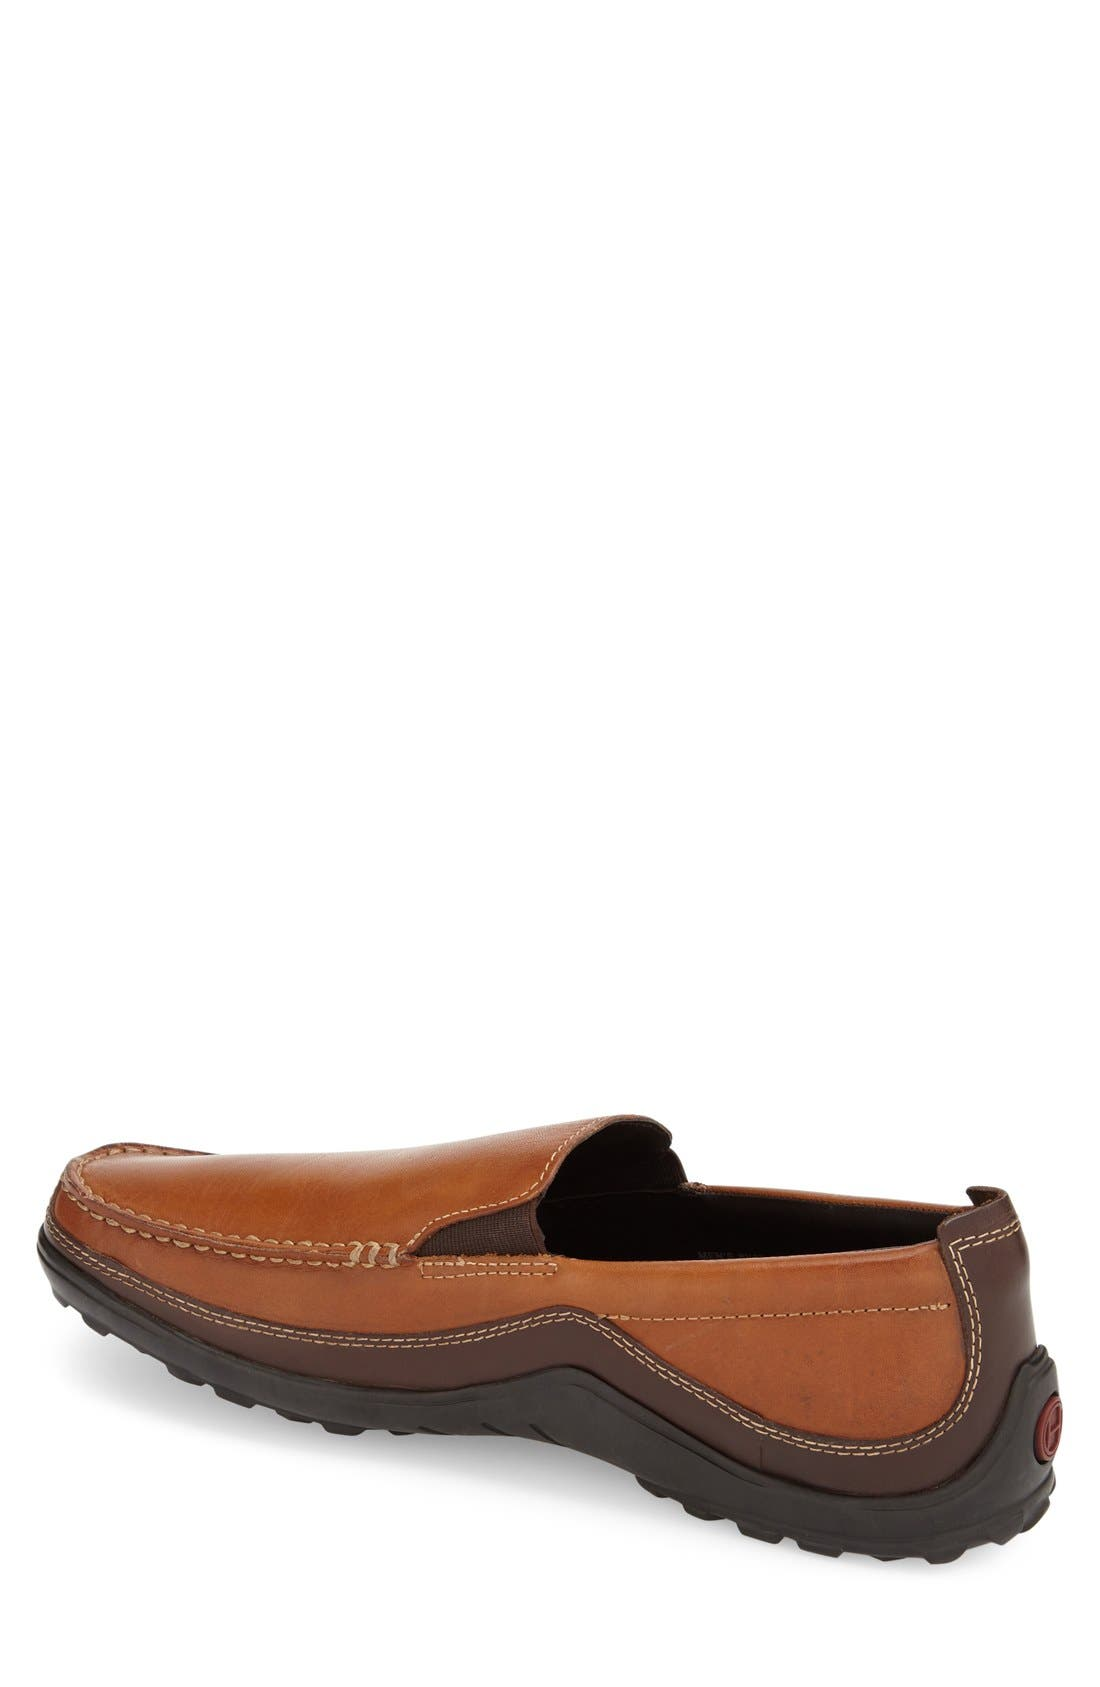 COLE HAAN, 'Tucker Venetian' Loafer, Alternate thumbnail 10, color, TAN